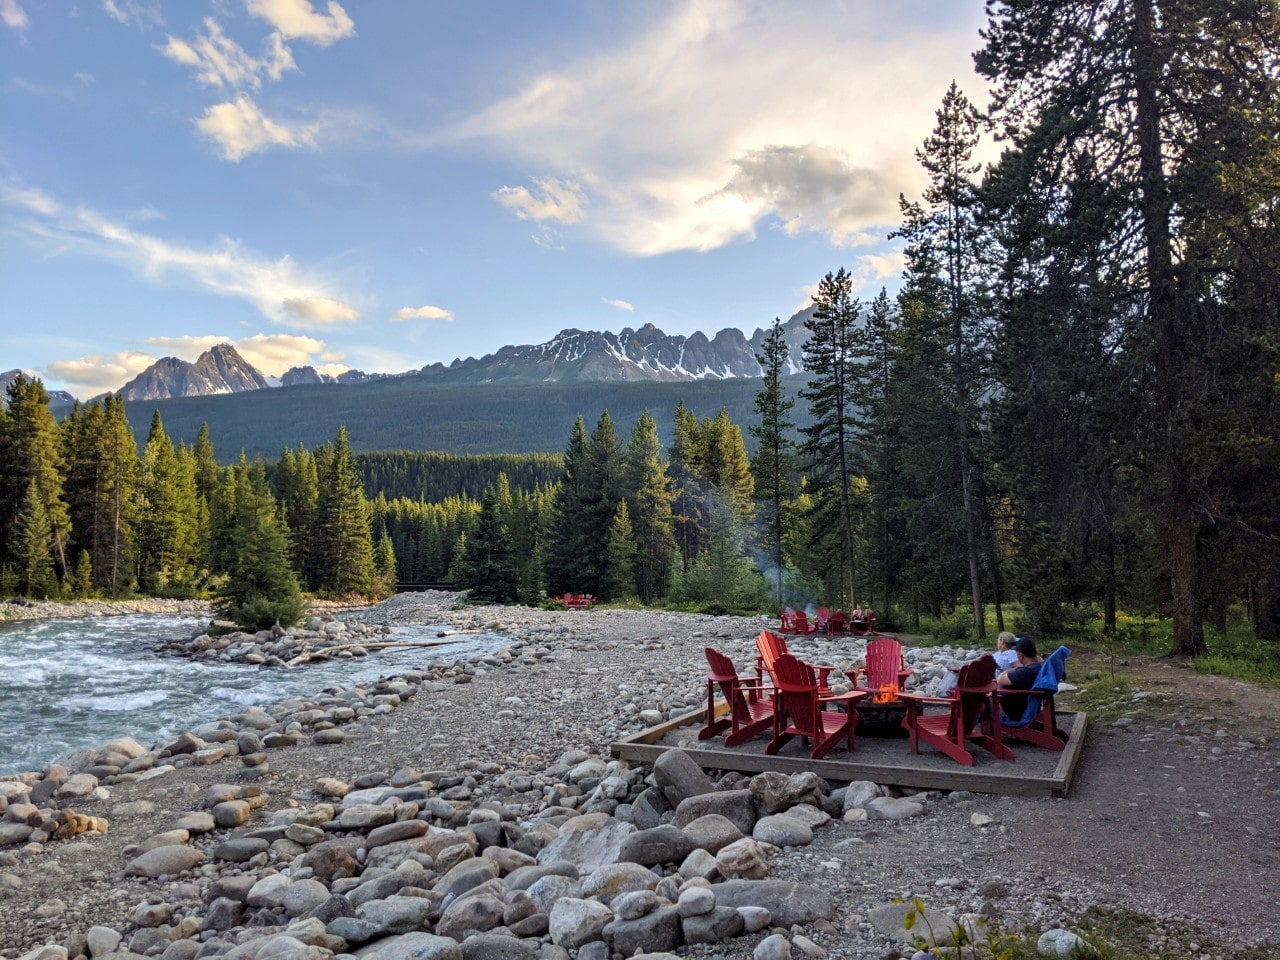 Firepits and red Adirondack chairs set next to rushing Baker Creek, backdropped by mountains